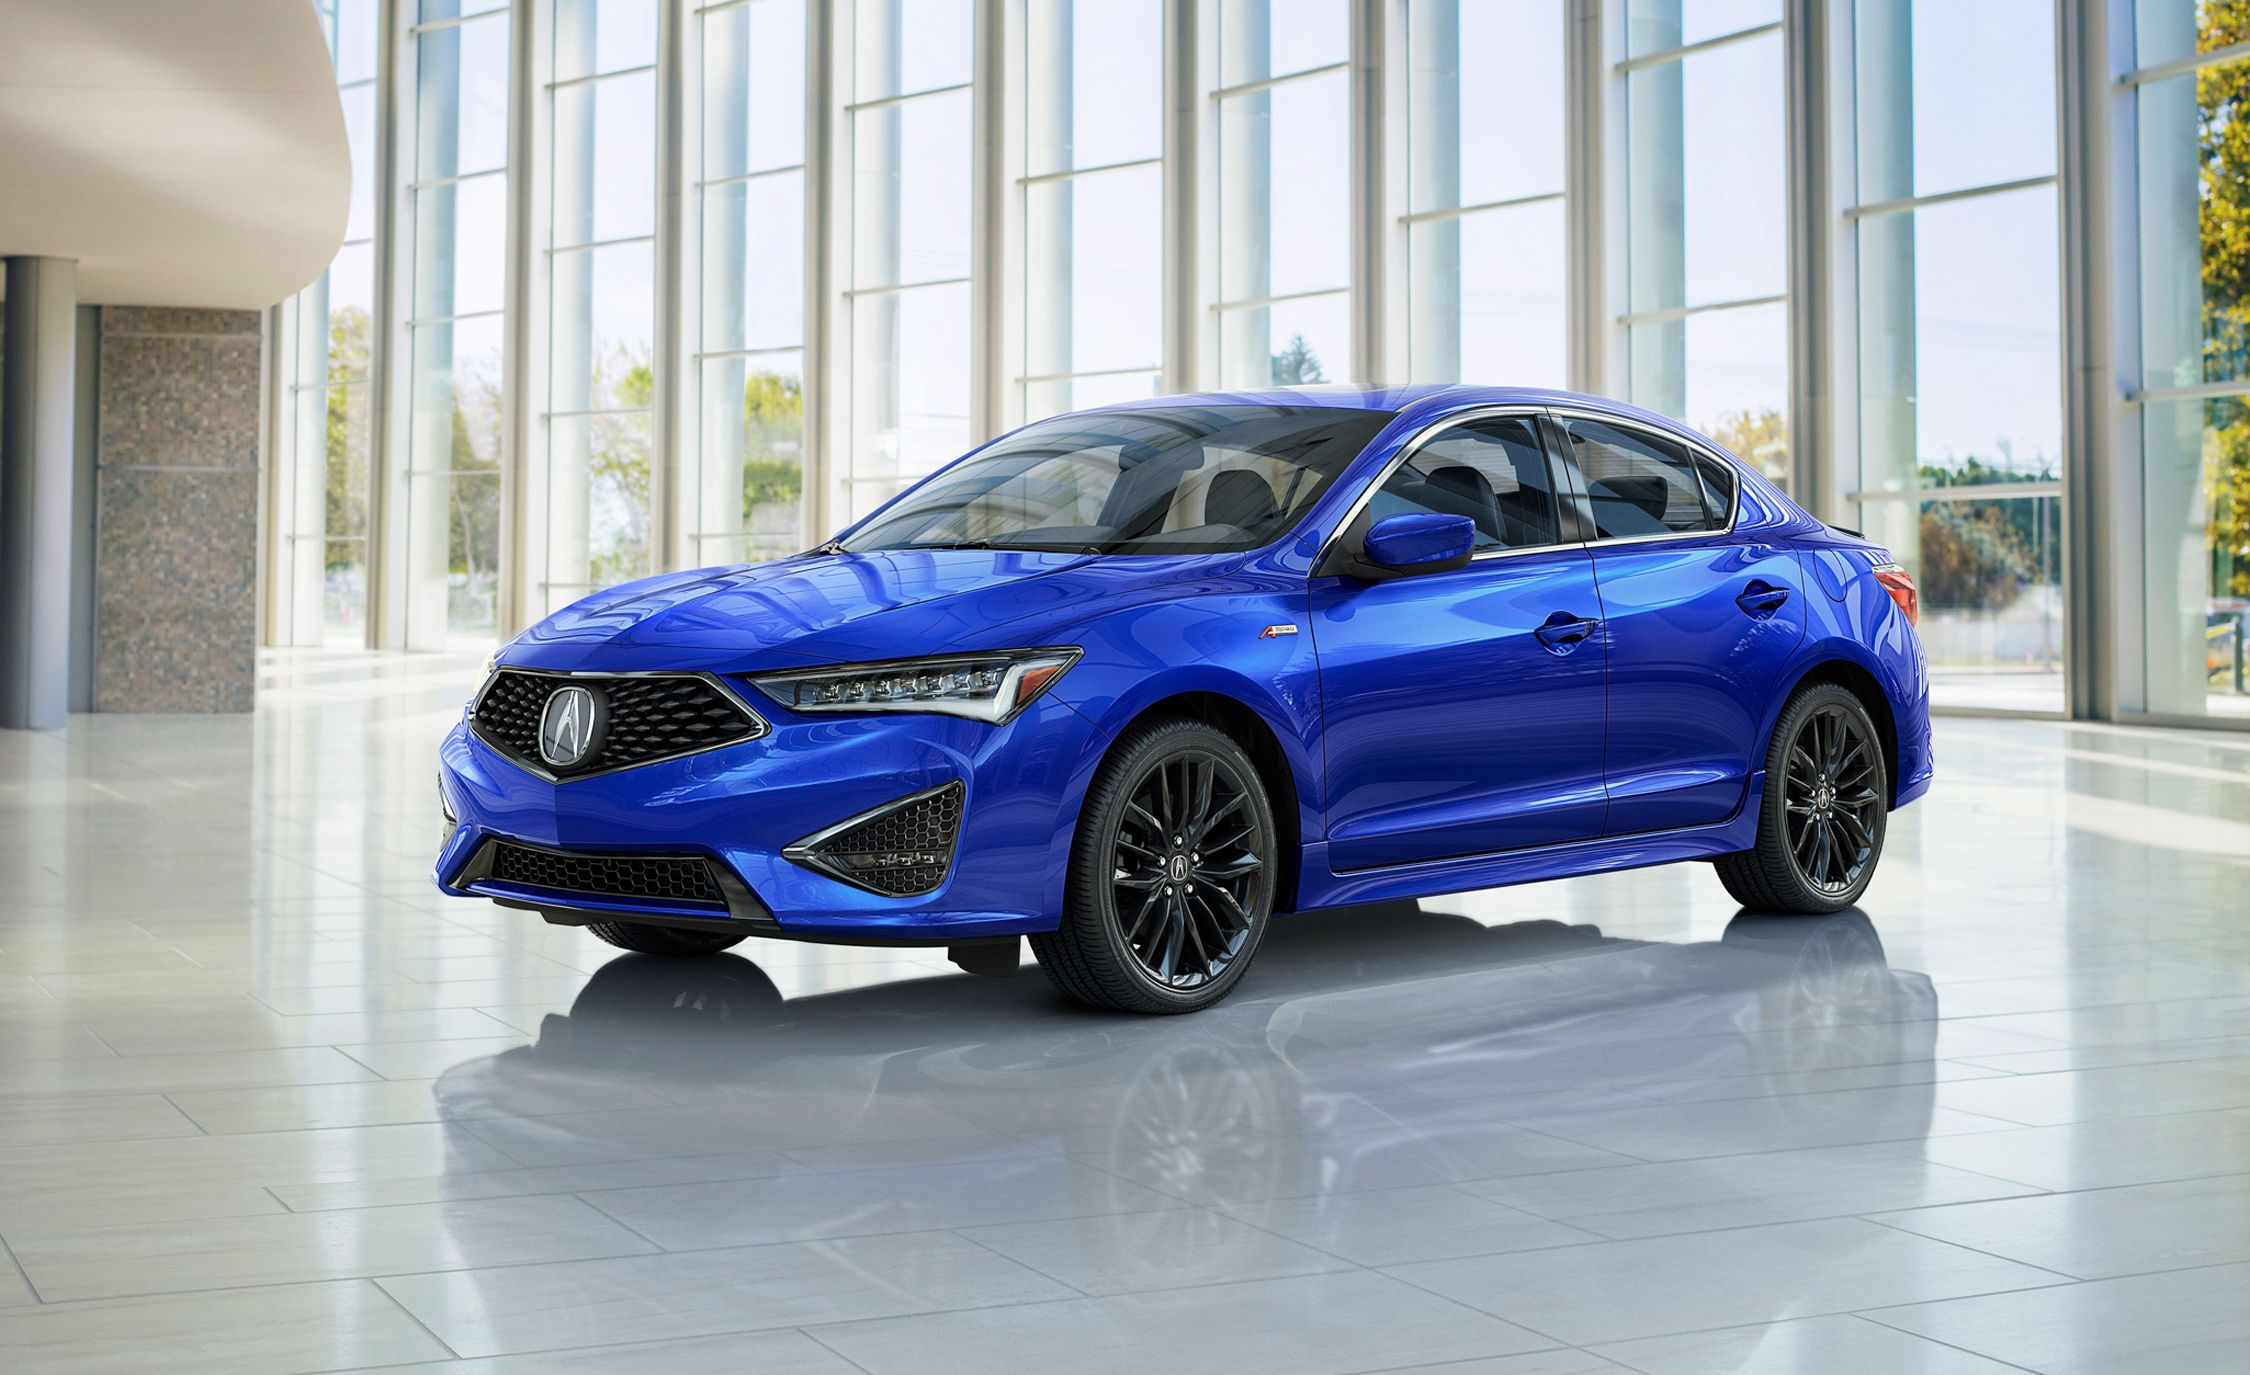 2019 Acura ILX Refreshed Updated Compact Sedan With A Spec